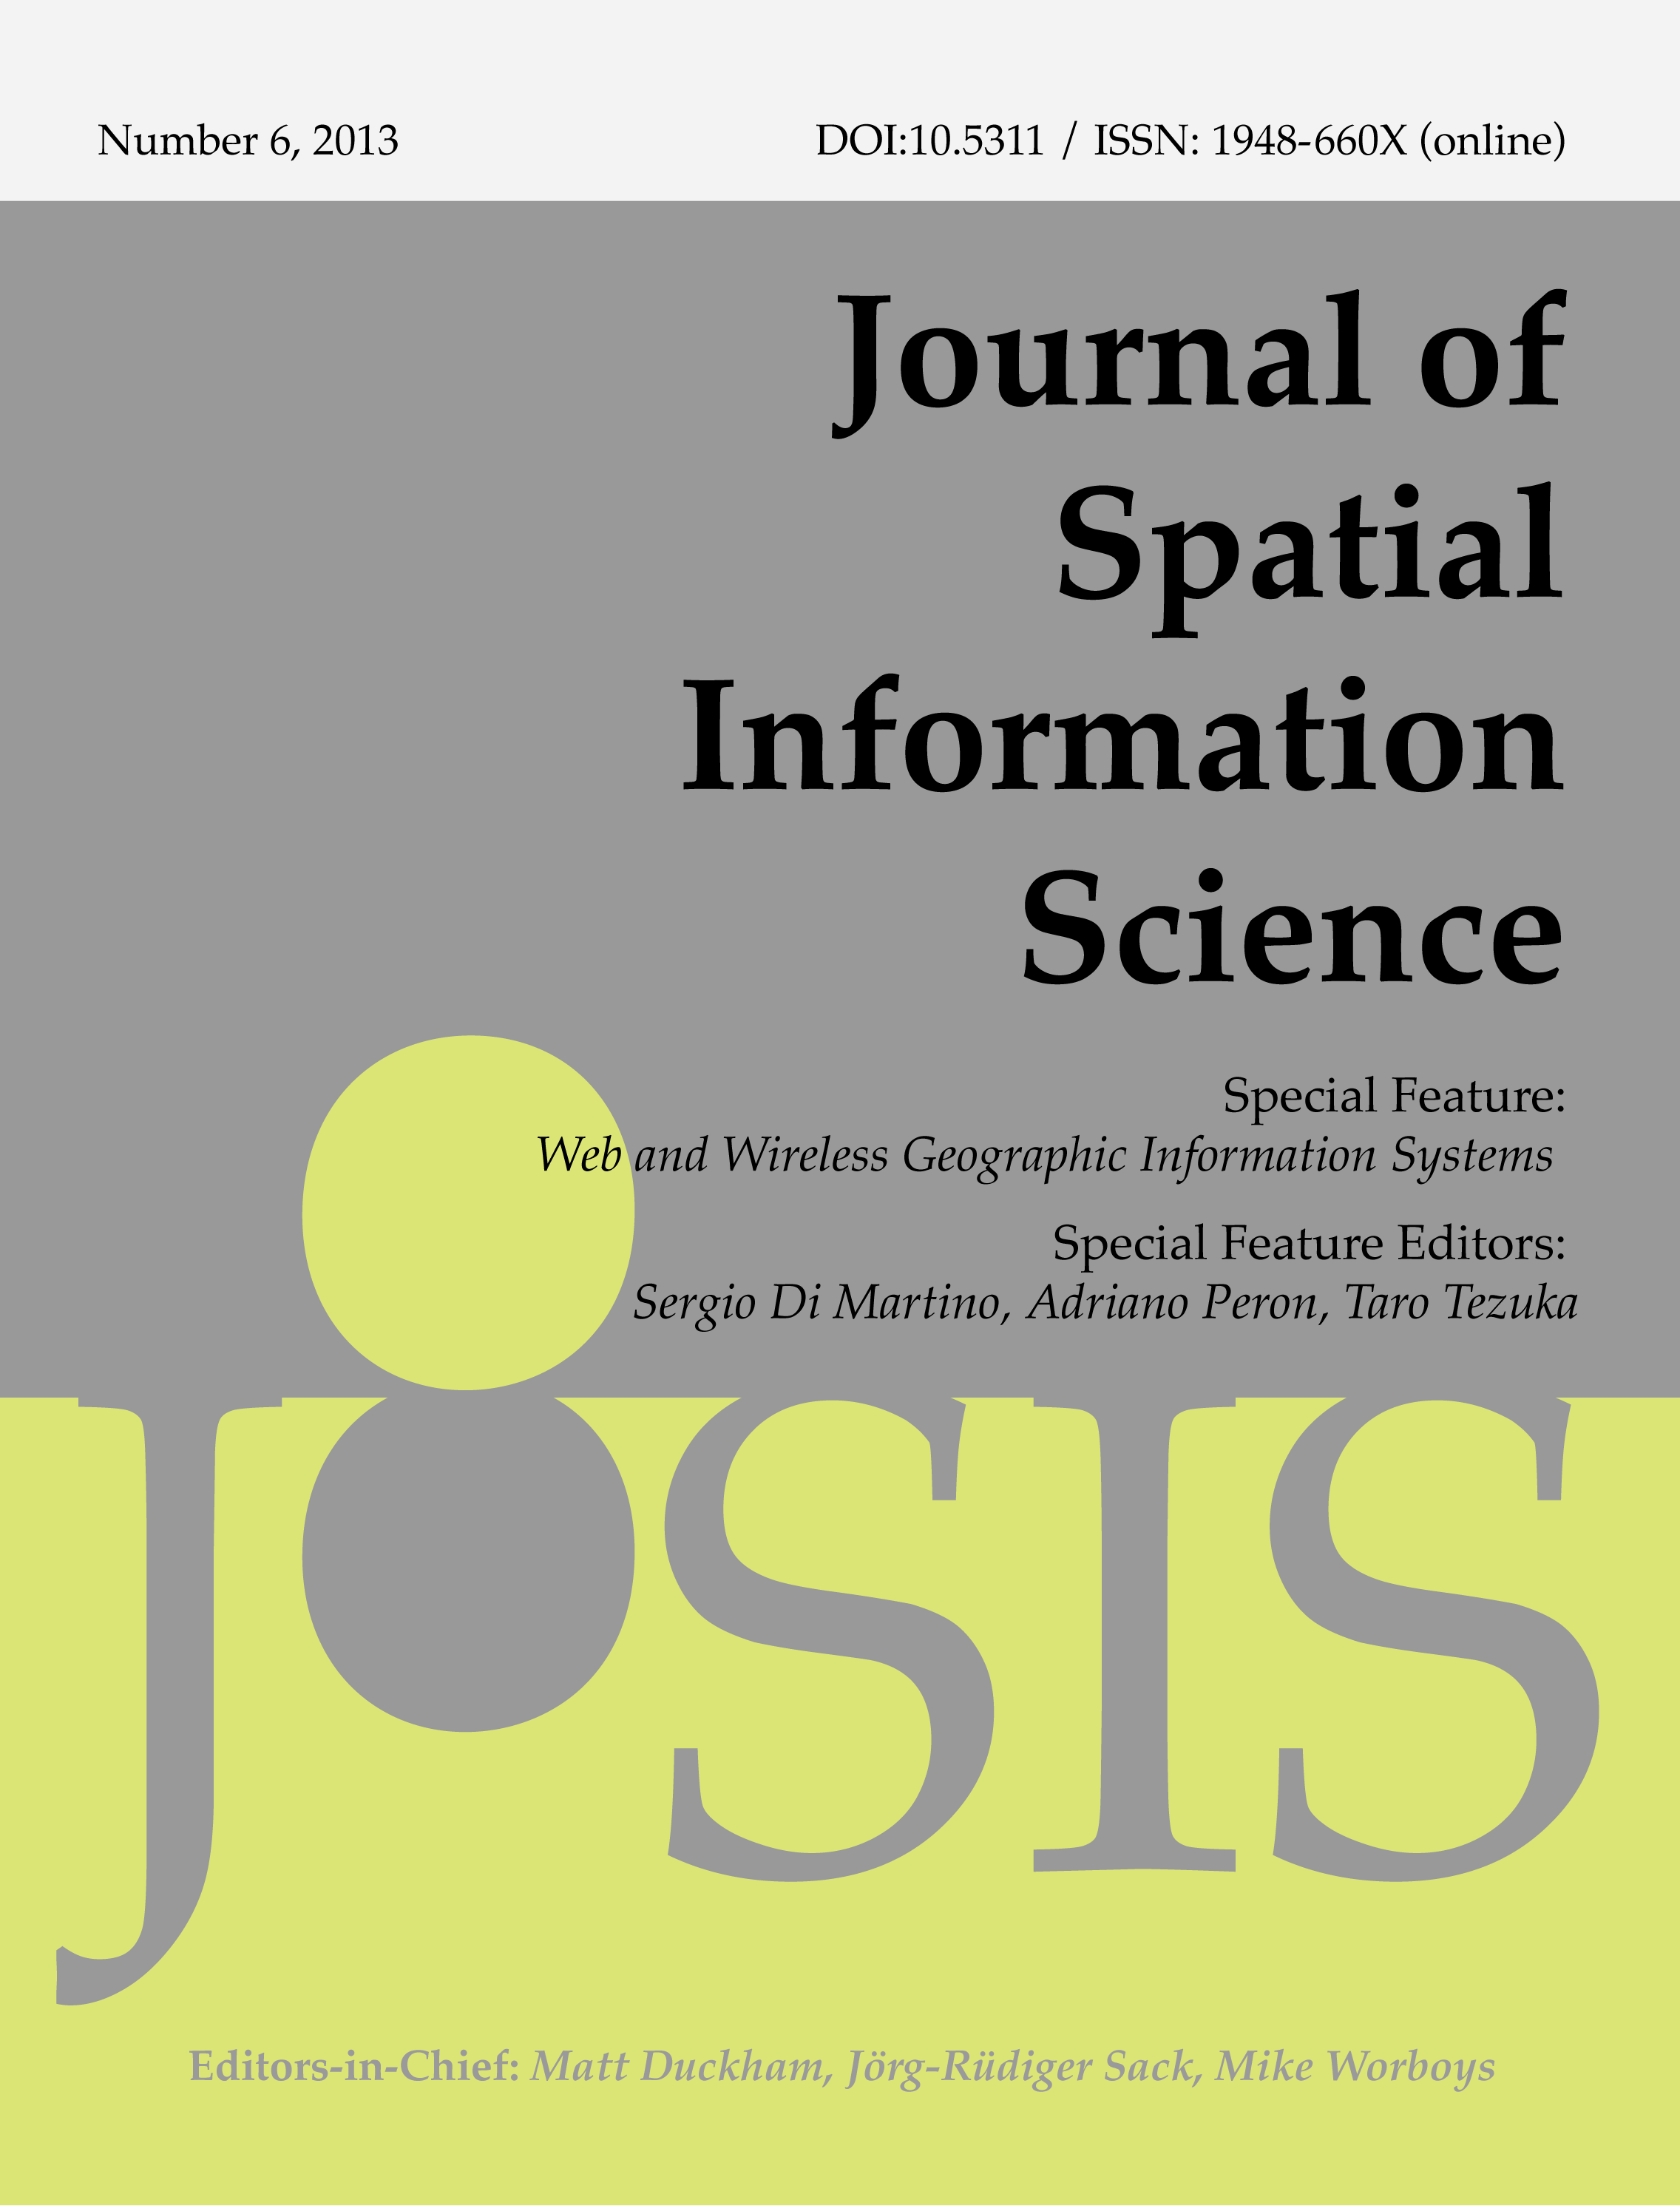 View No. 6 (2013): Special feature on Web and Wireless Geographic Information Systems